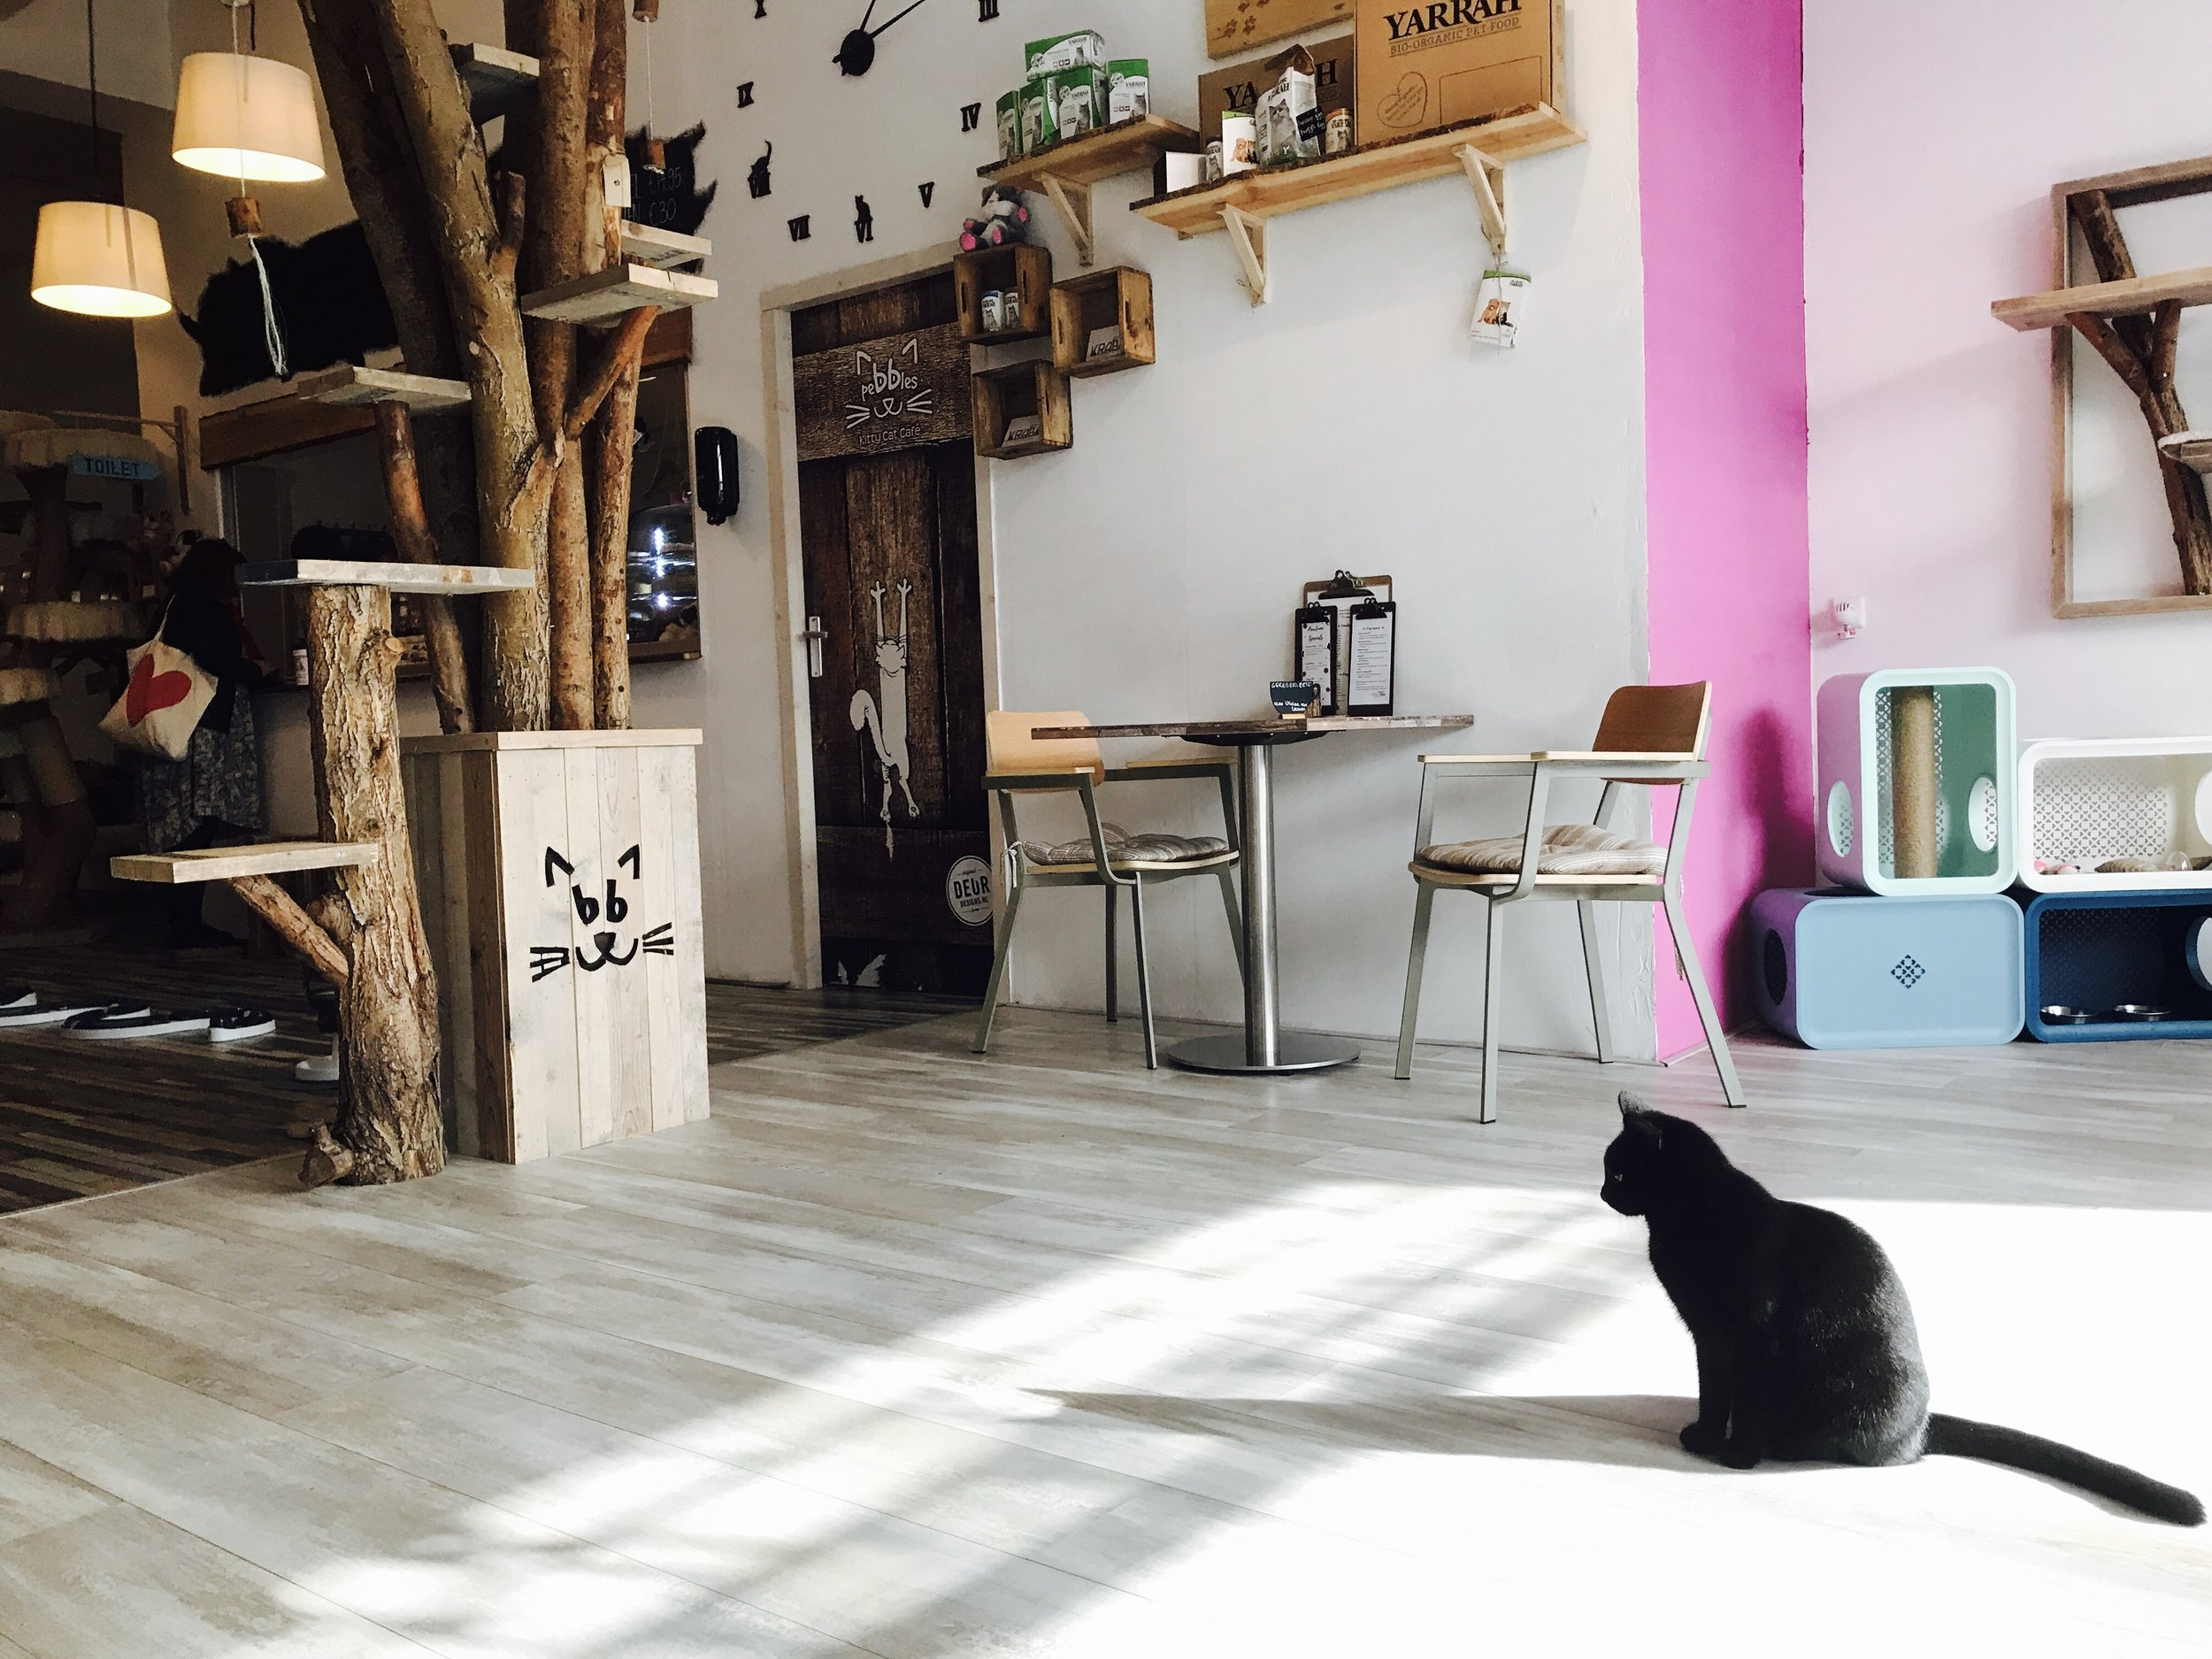 Rotterdam, Netherlands:  Pebbles Kitty Cafe